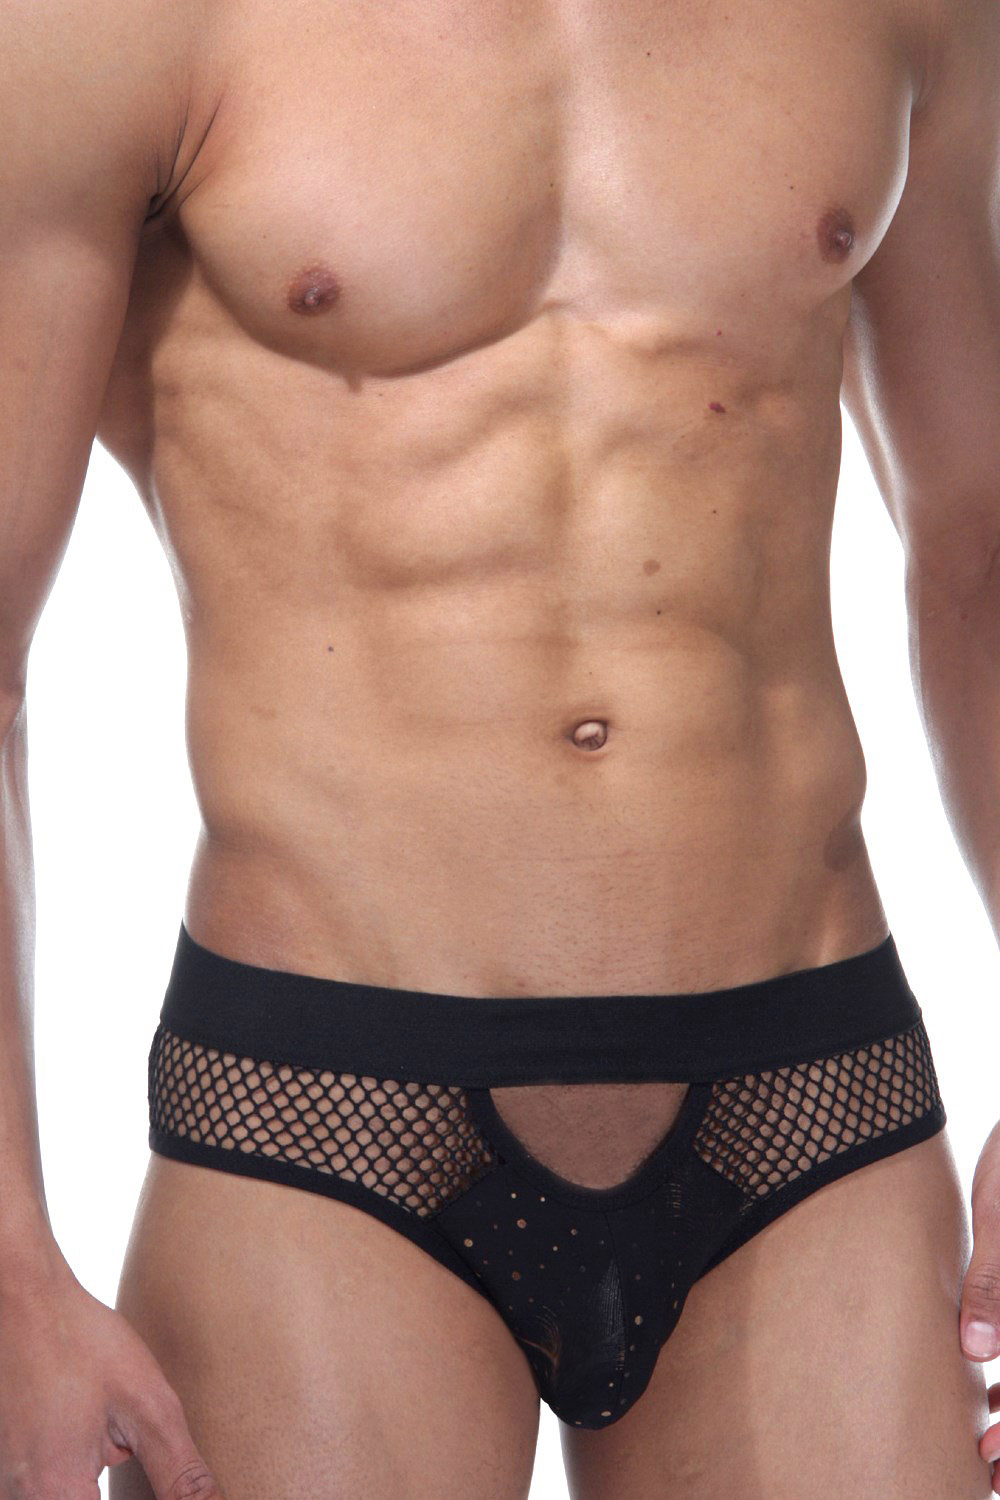 DON MORIS brief at oboy.com